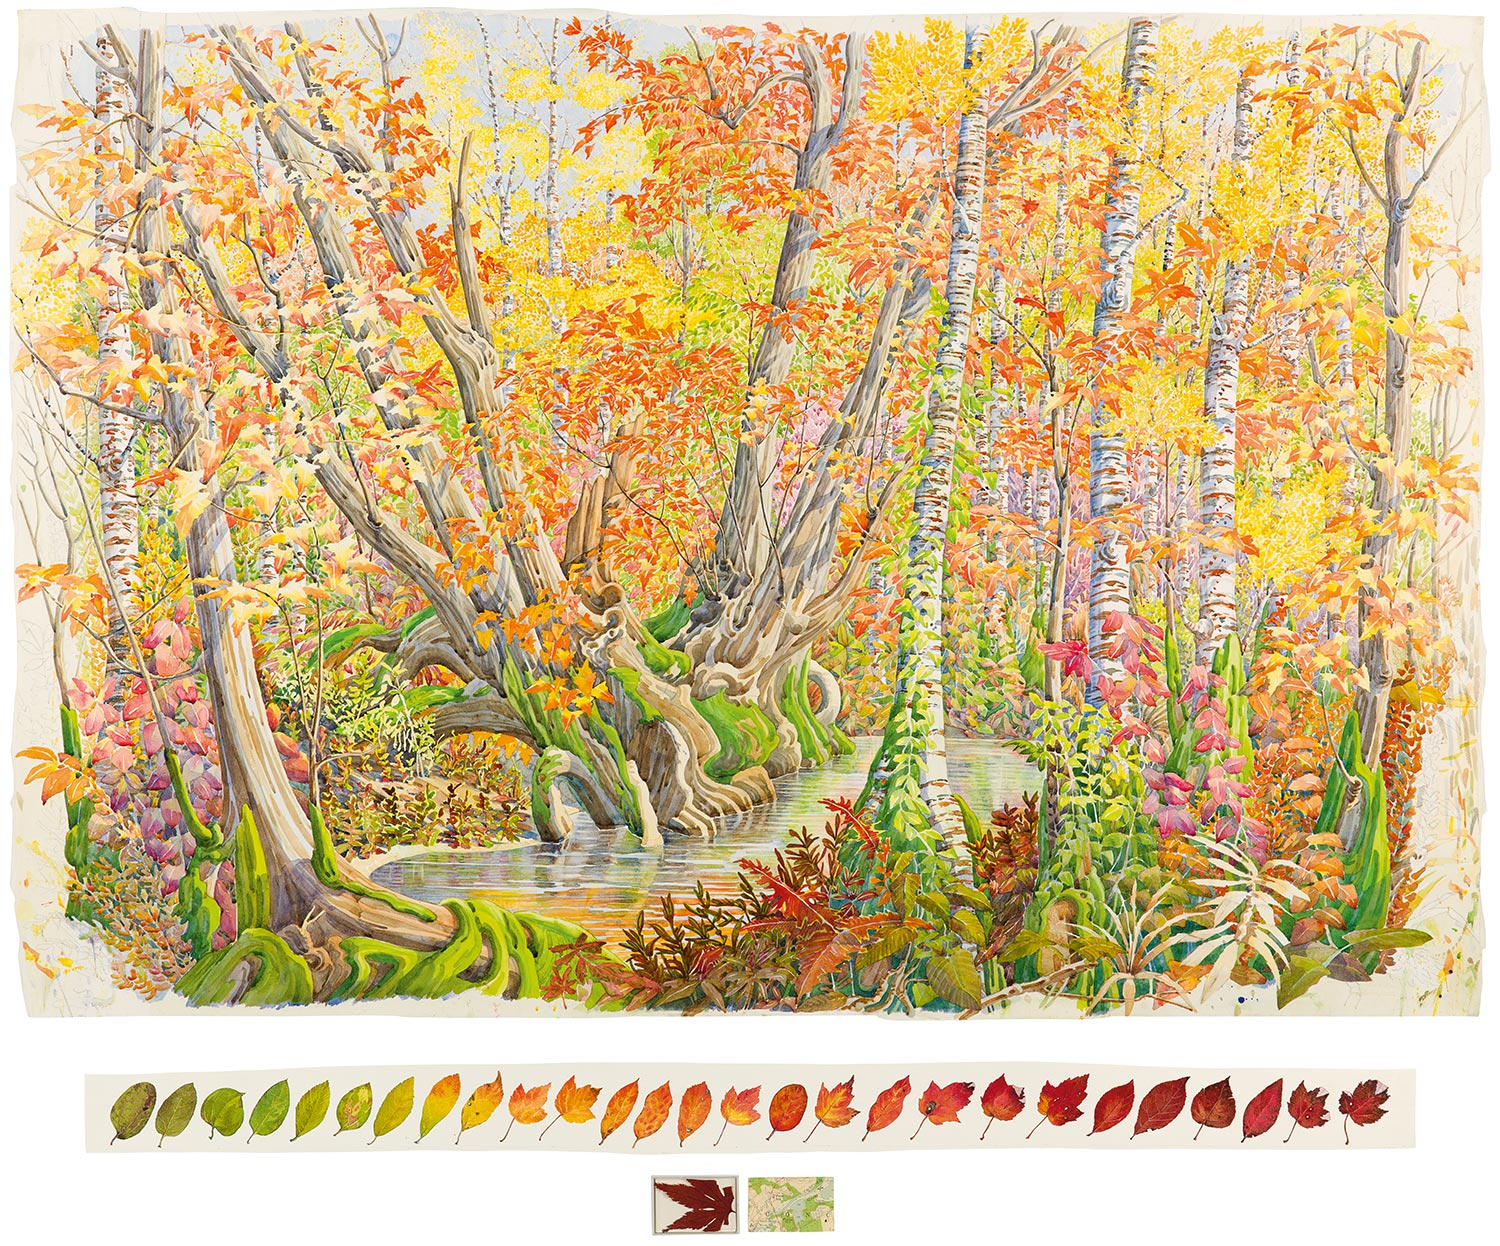 Tony Foster,  Fall Colour in Great Meadow, Concord , 2012. Watercolor and graphite on paper, maple leaf, acrylic box, map. 36 x 52 3/4 in. | 3 3/8 x 47 5/8 in. Photo by Trevor Burrows Photography. Courtesy of Foster Art & Wilderness Foundation.